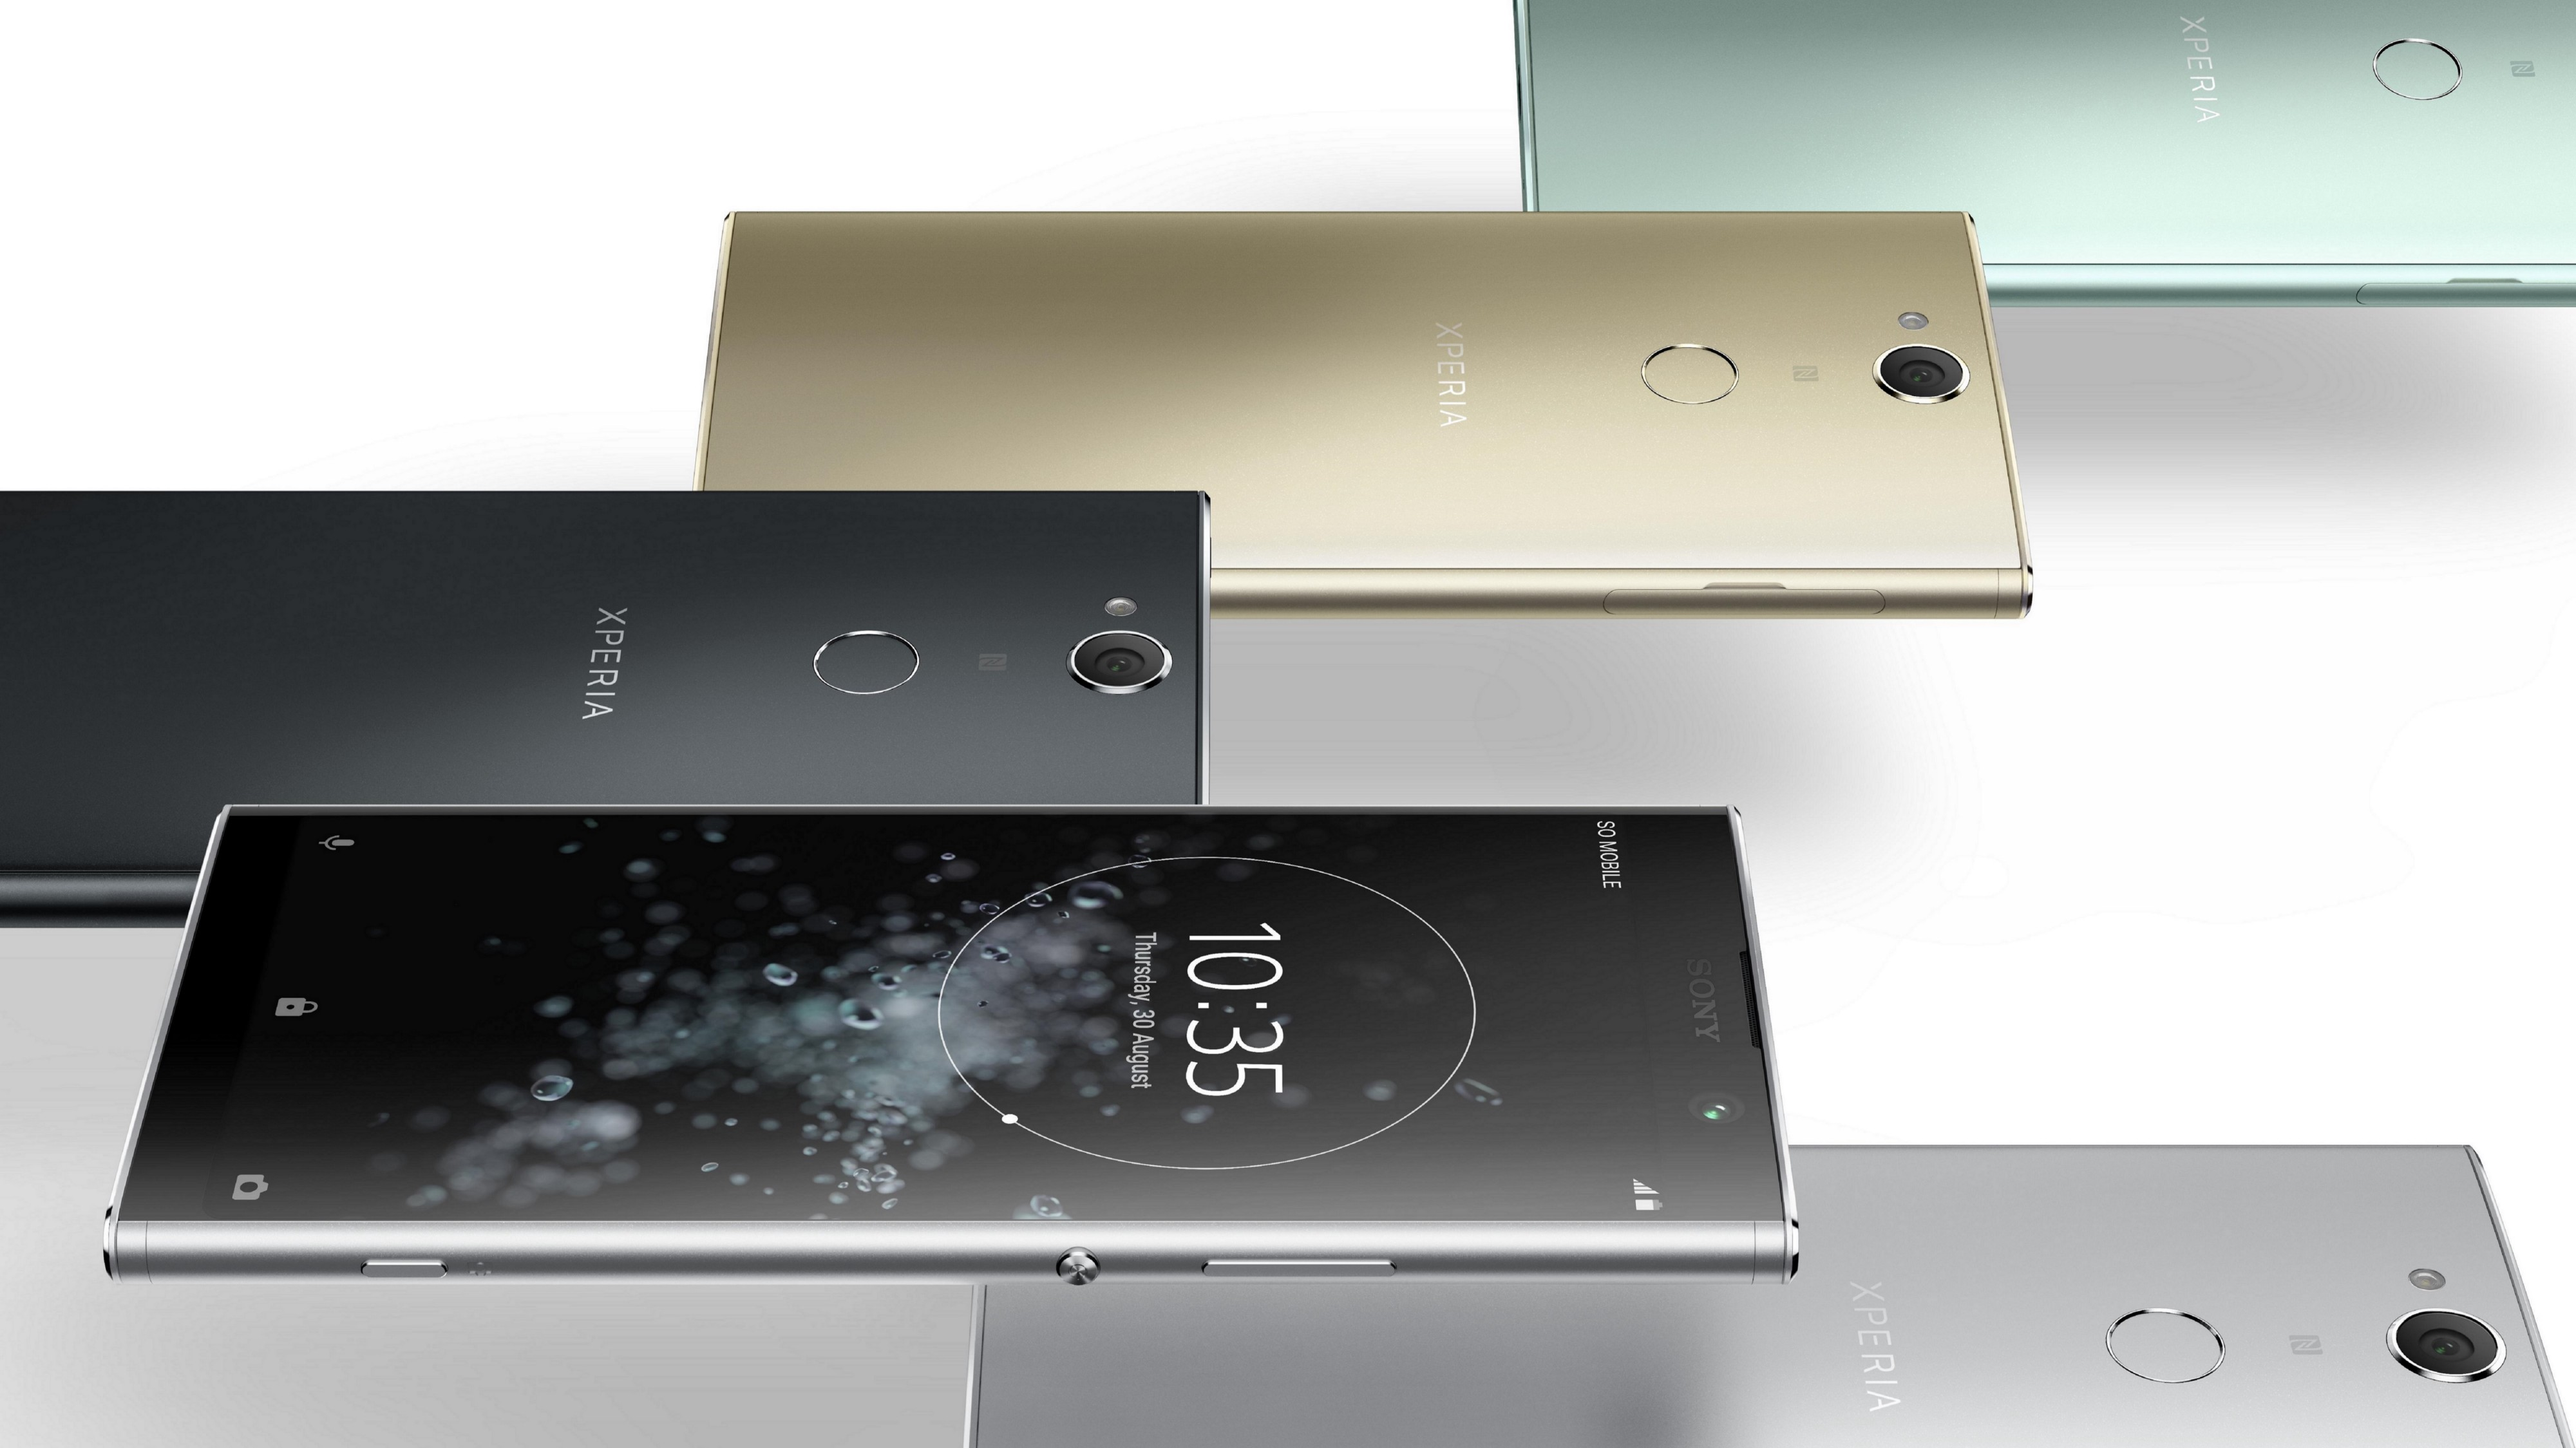 Android September security patch comes to Sony Xperia XA2